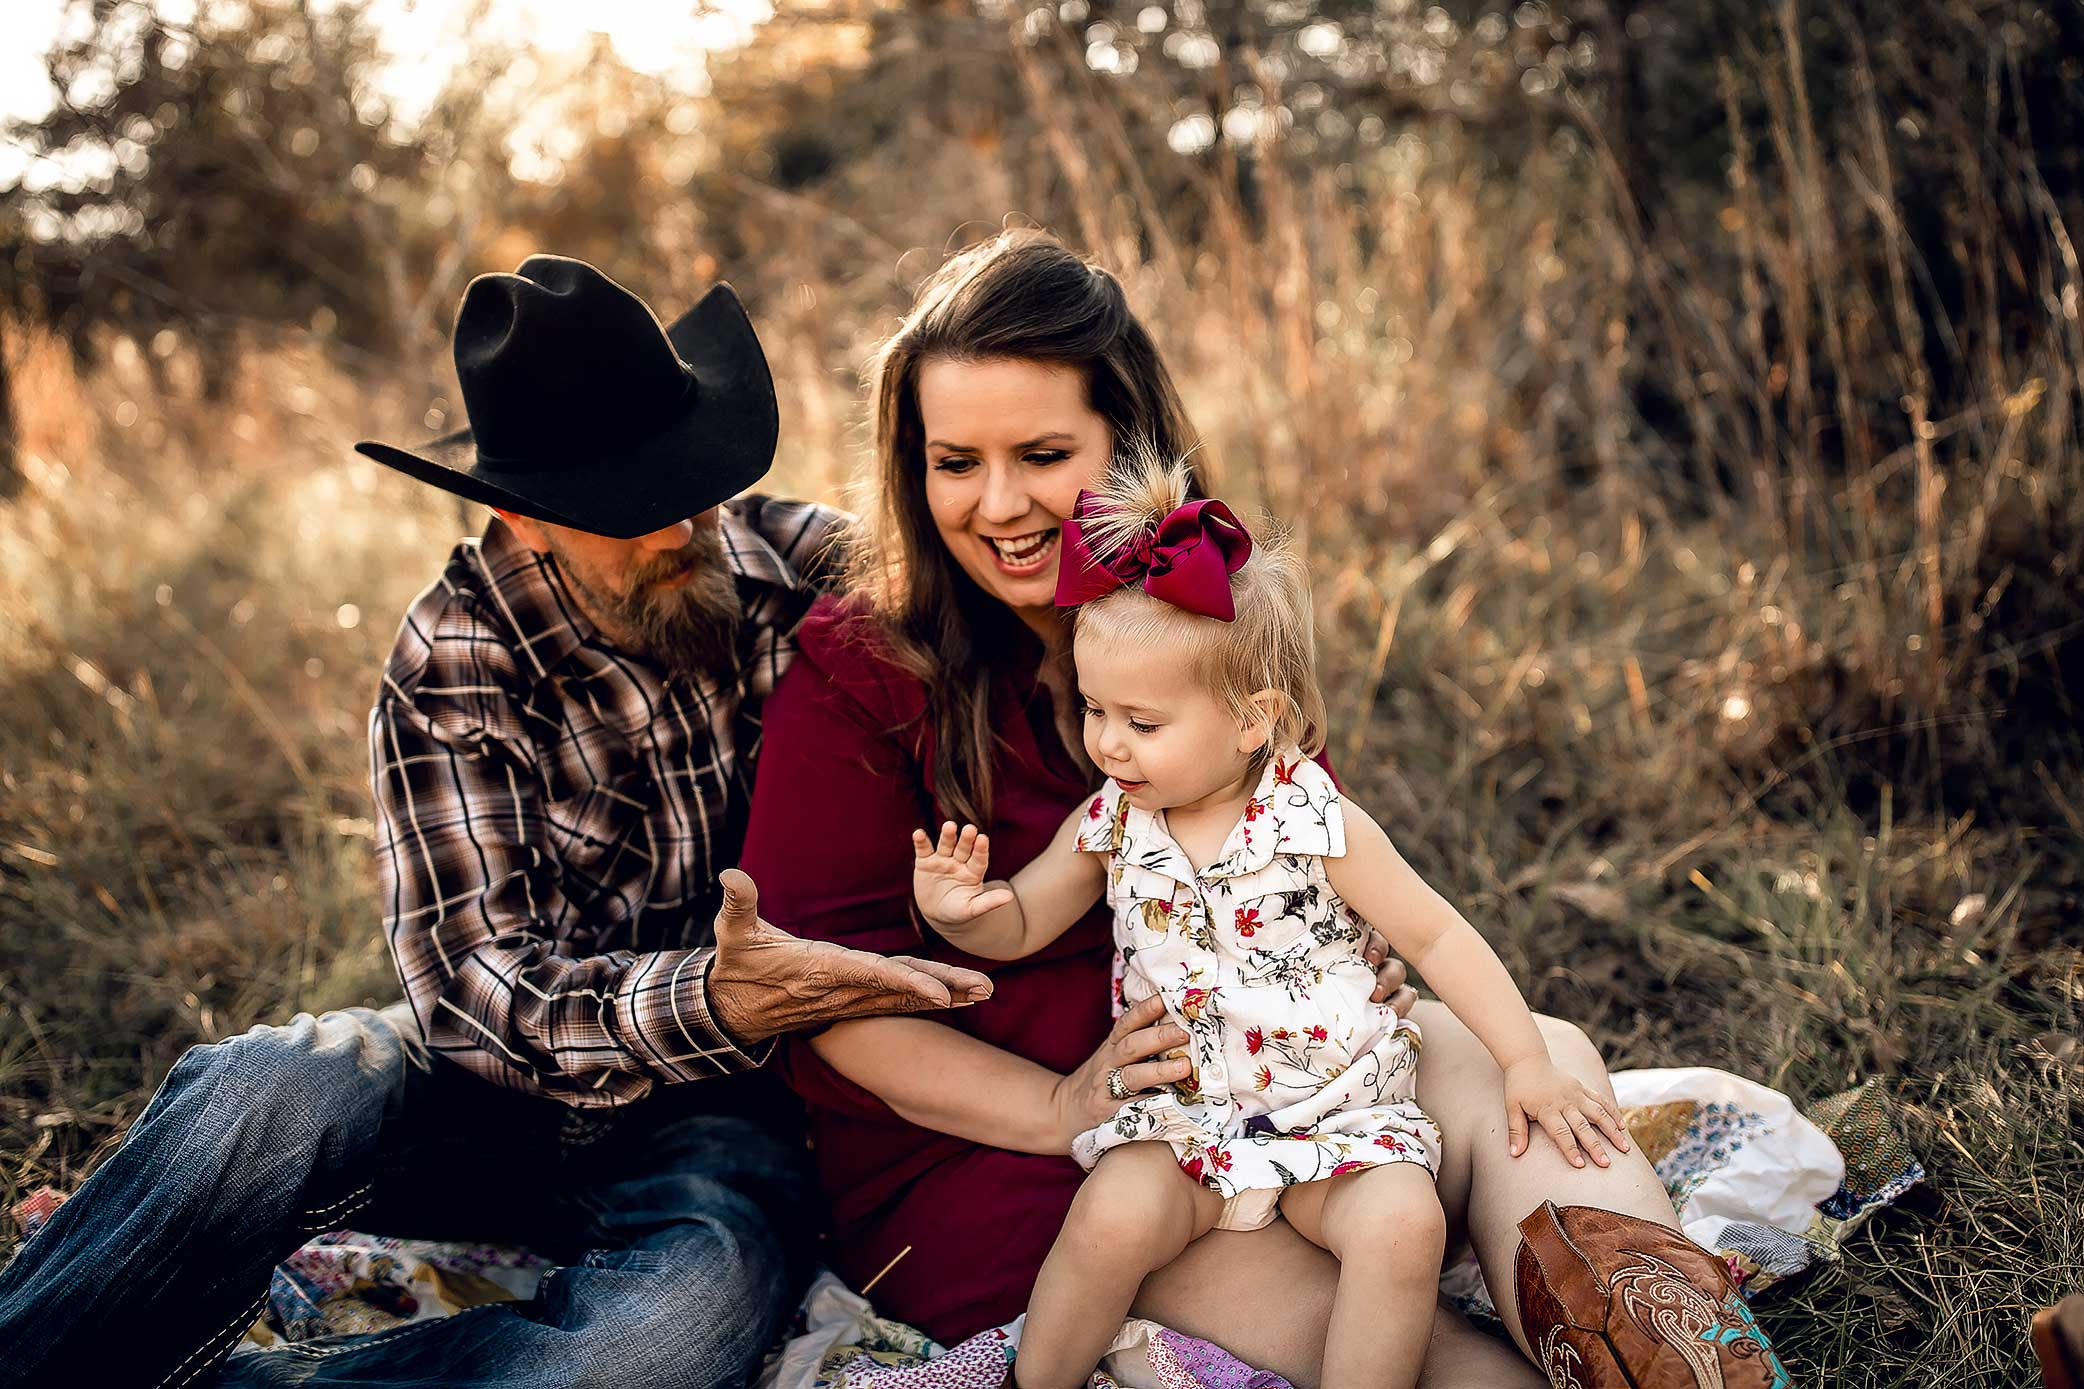 shelby-schiller-photography-family-dad-cowboy-hat-maroon-dress-high-fives.jpg